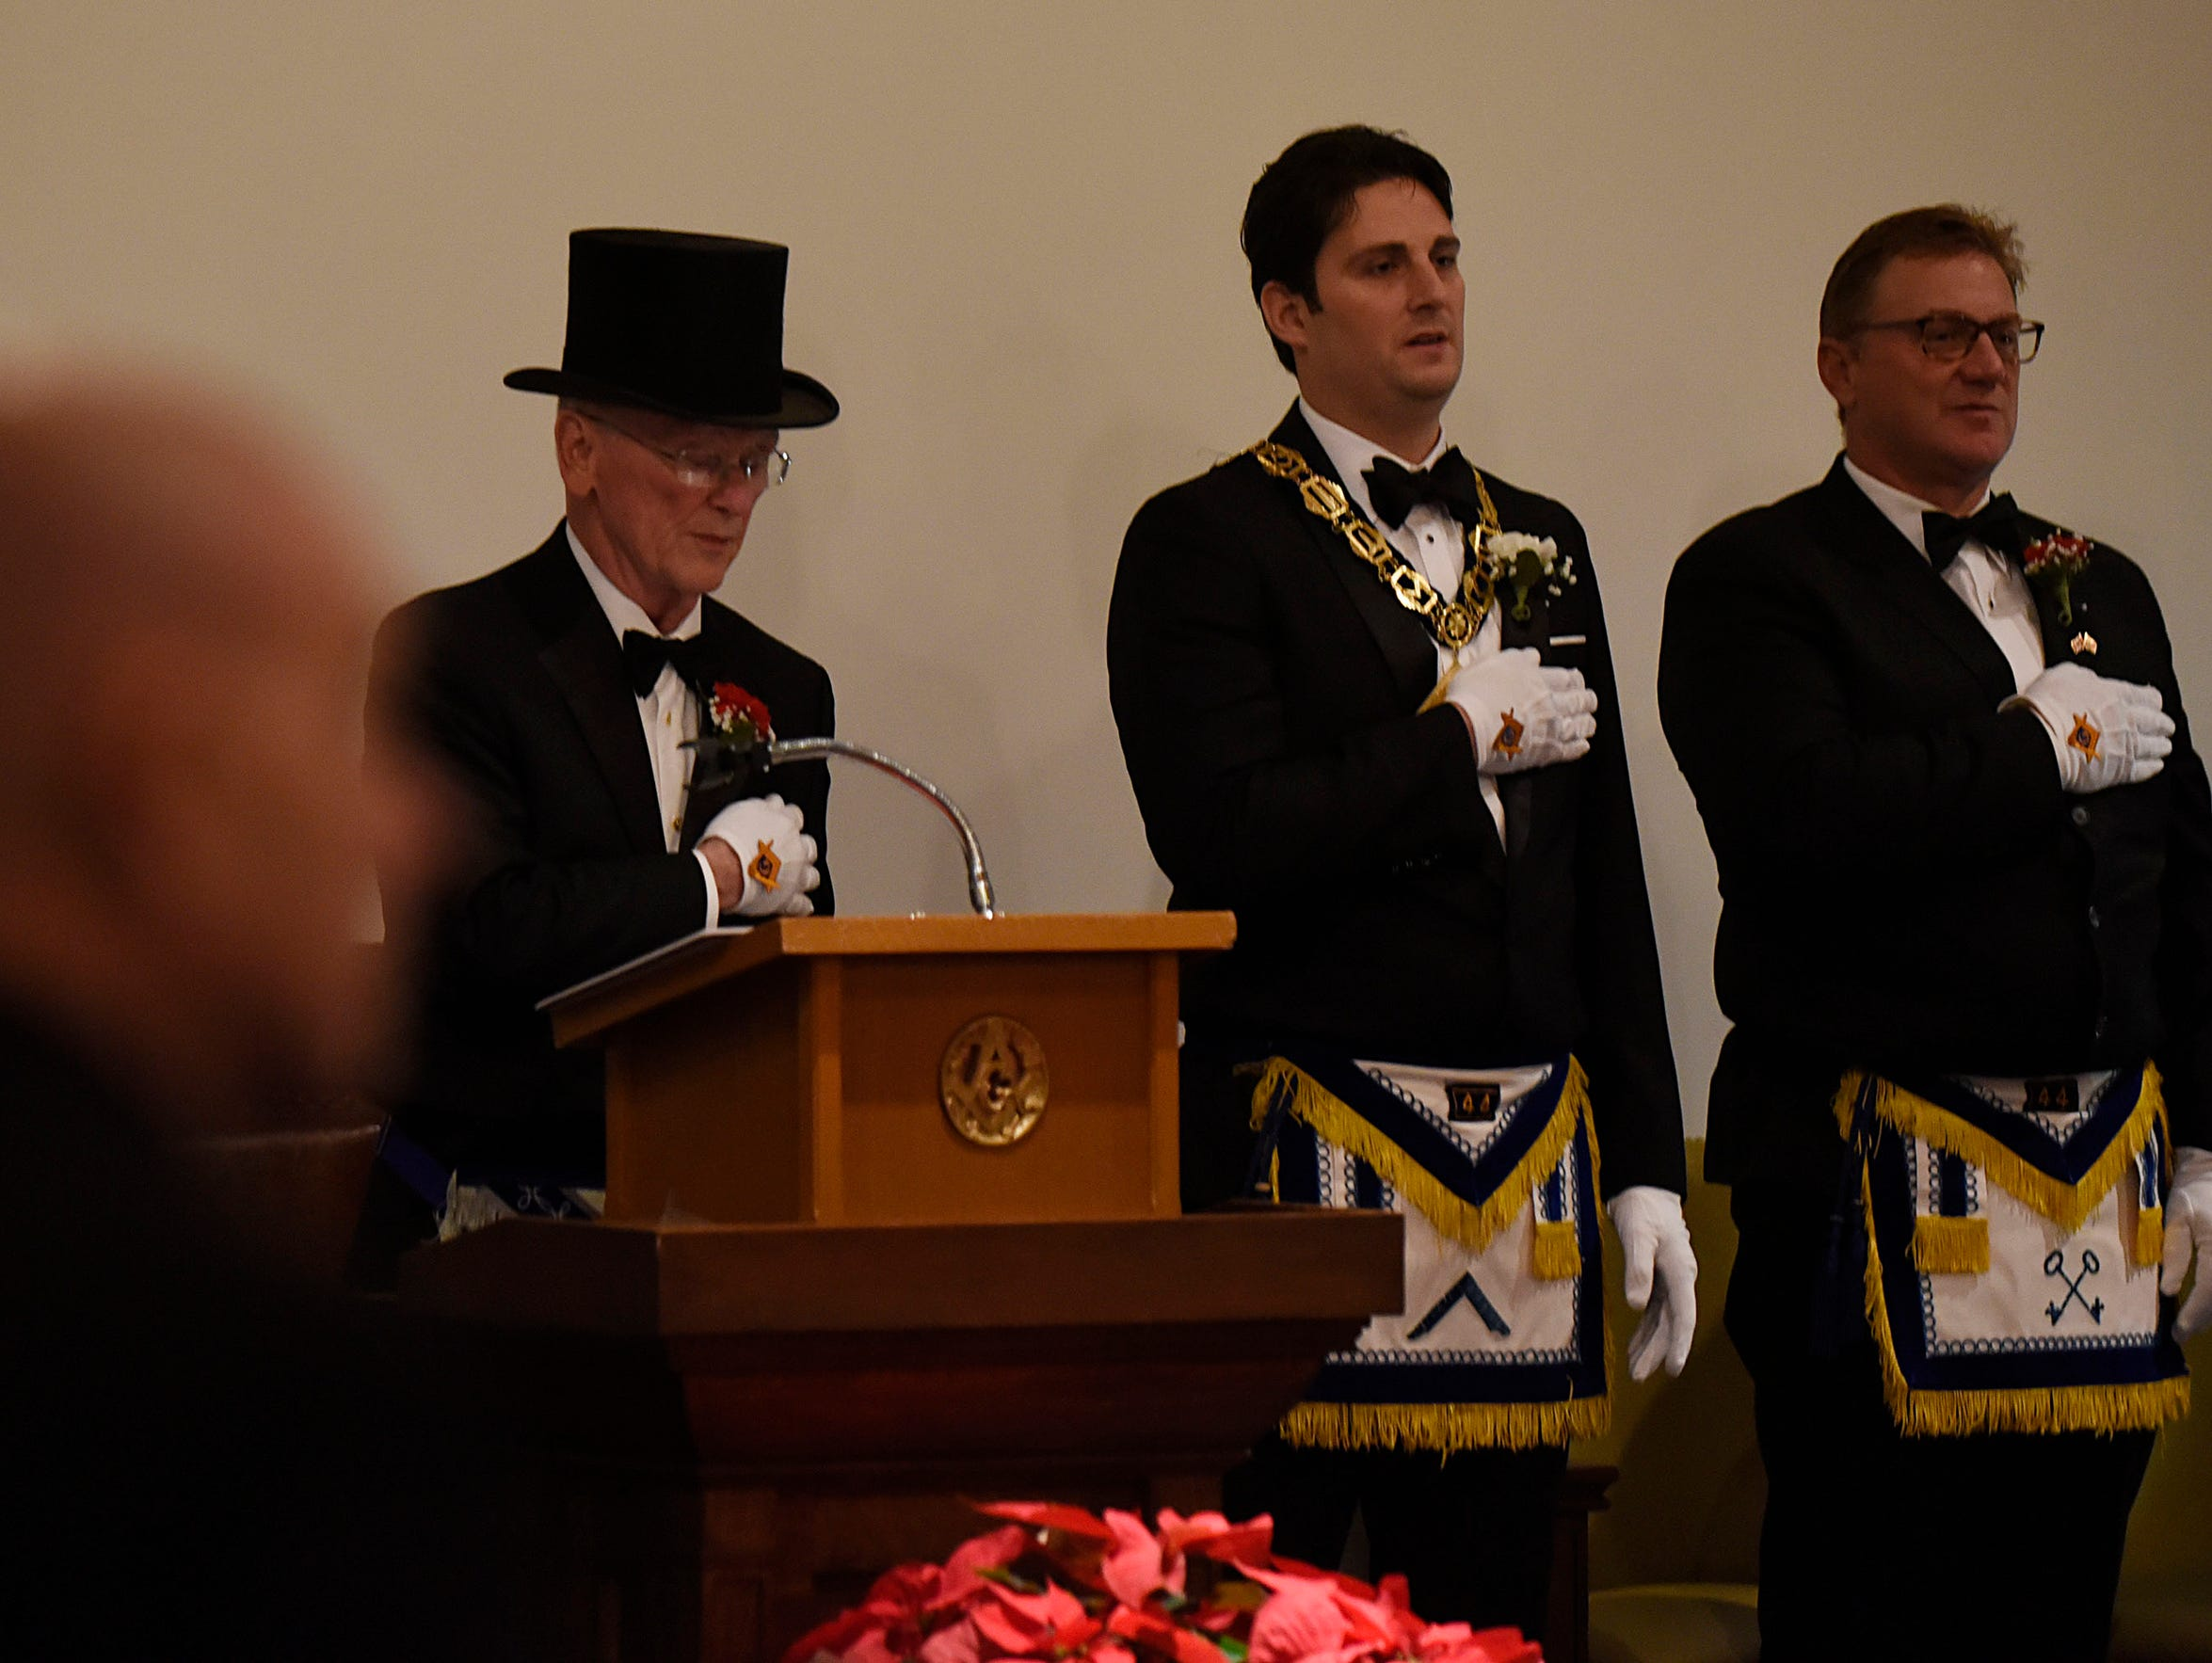 Robert Hall, (left) served as the installing Grand